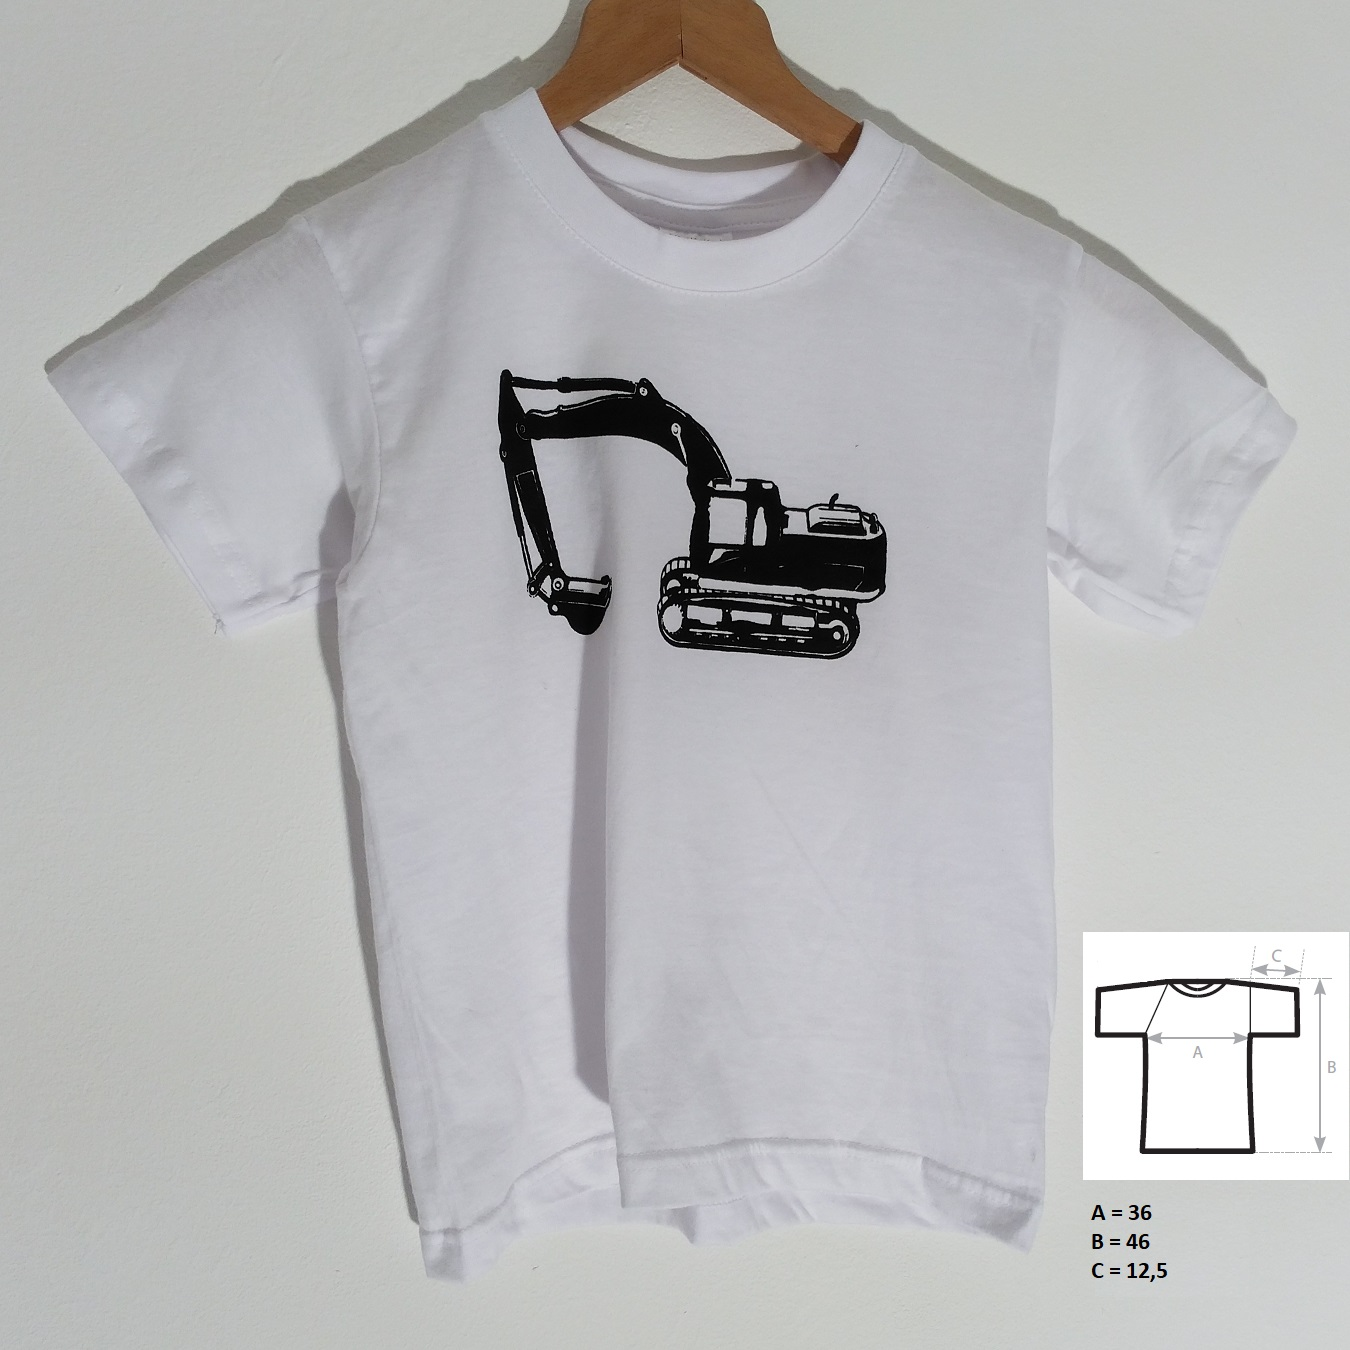 Kids T-shirt, size 5/6 (110-116) with excavator. (100% cotton)